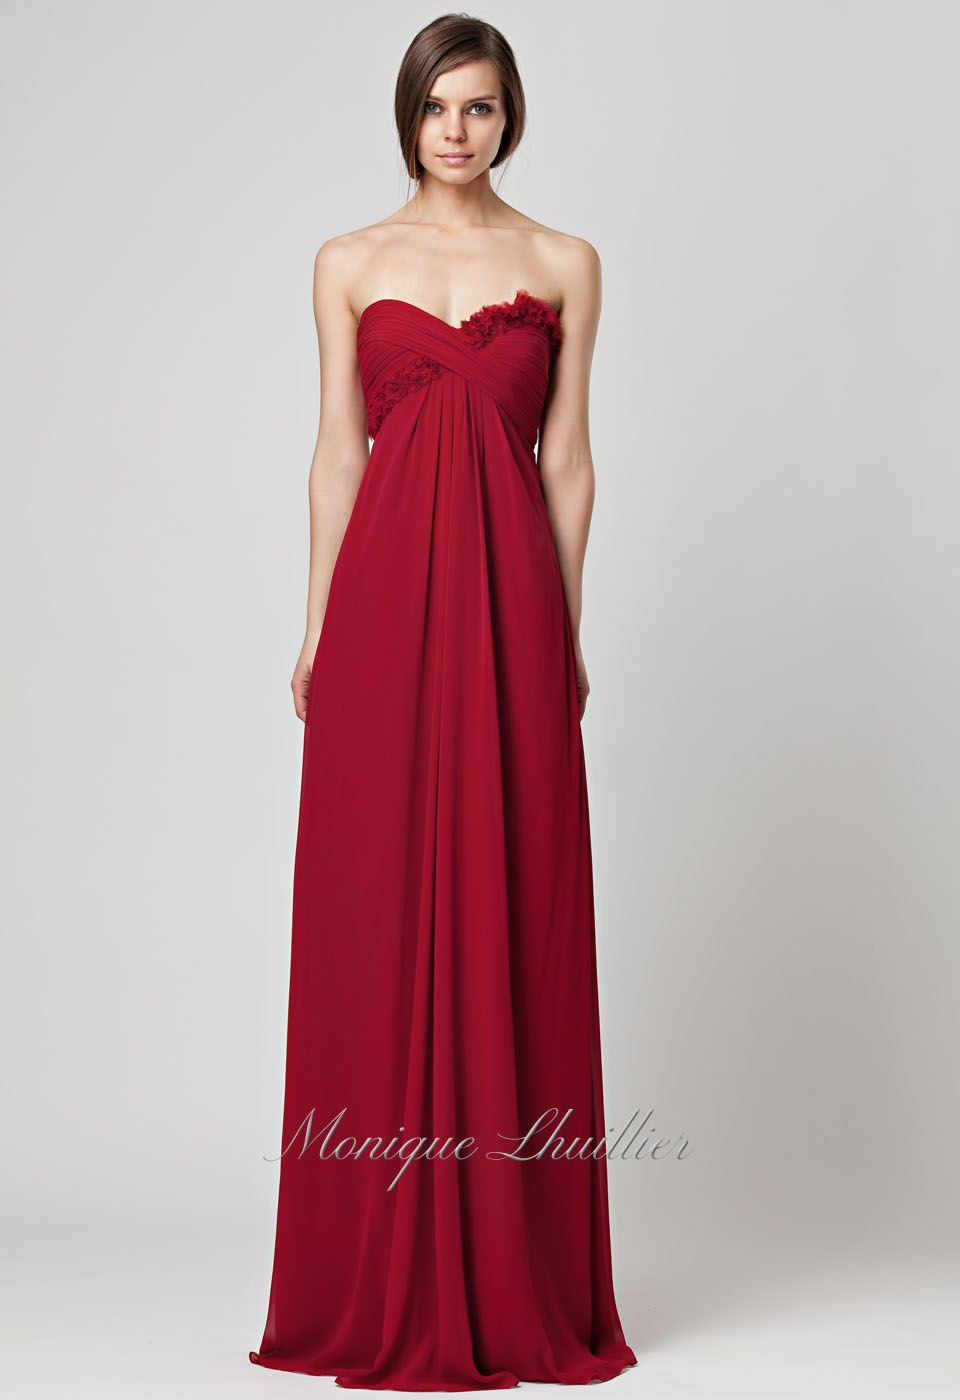 Monique lhuillier bridesmaids dress in cranberry colour wheel search used wedding dresses preowned wedding gowns for sale ombrellifo Image collections